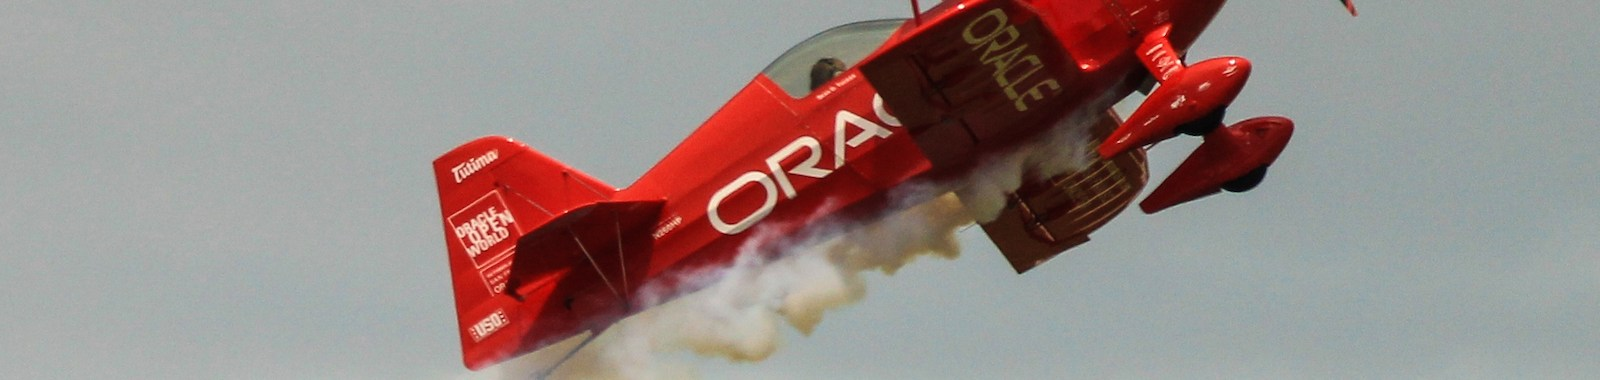 Team Oracle biplane in Dayton Airshow 2015